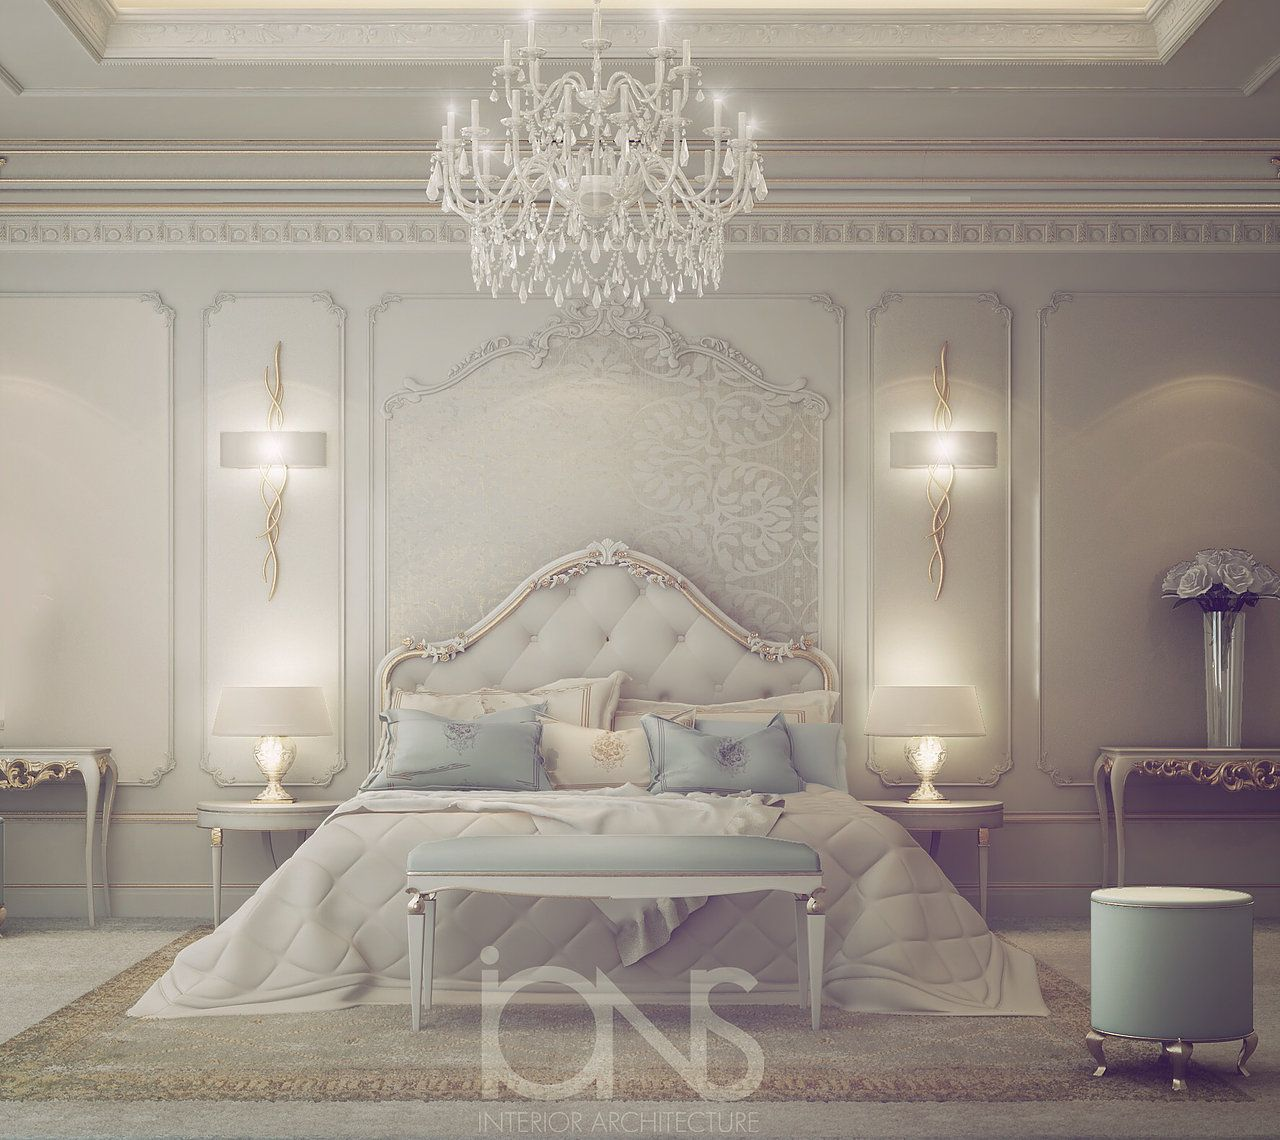 New Home Designs Latest Luxury Homes Interior Decoration: Luxury Interior Design Dubai...IONS One The Leading